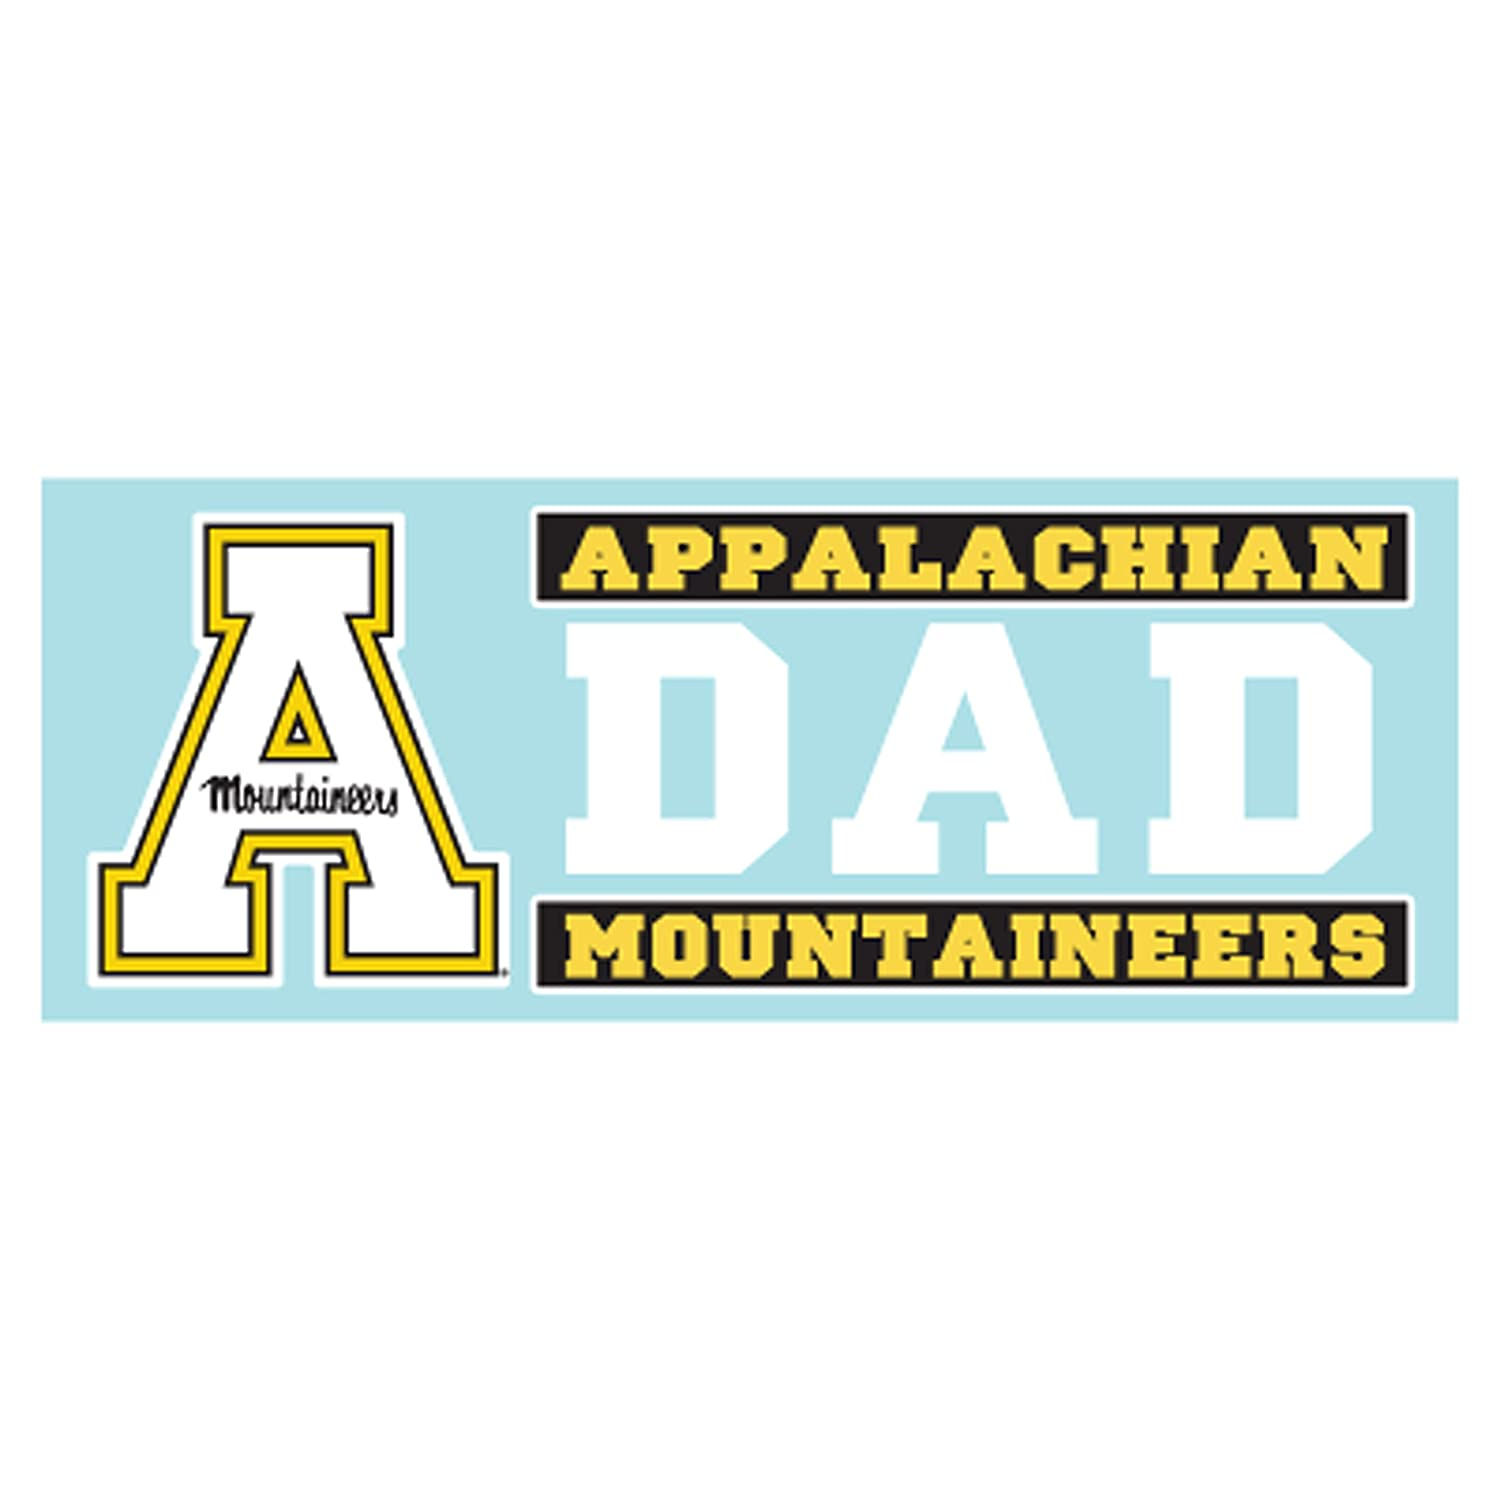 Craftique Appalachian State Mountaineers Decal